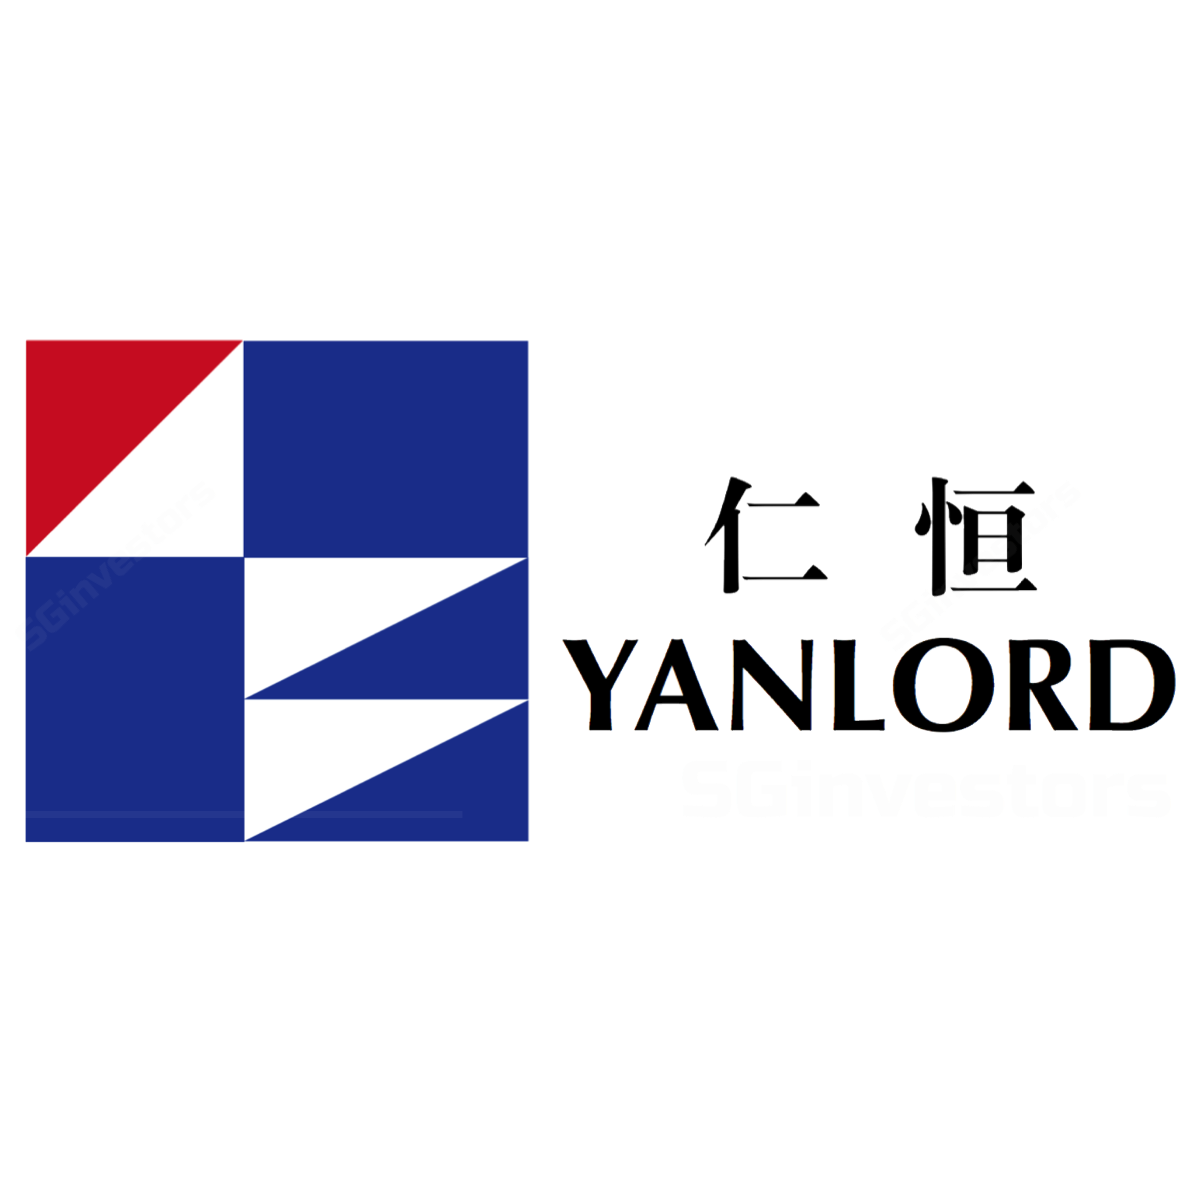 Yanlord Land - DBS Vickers 2018-05-18: Potential Restructuring To Accelerate